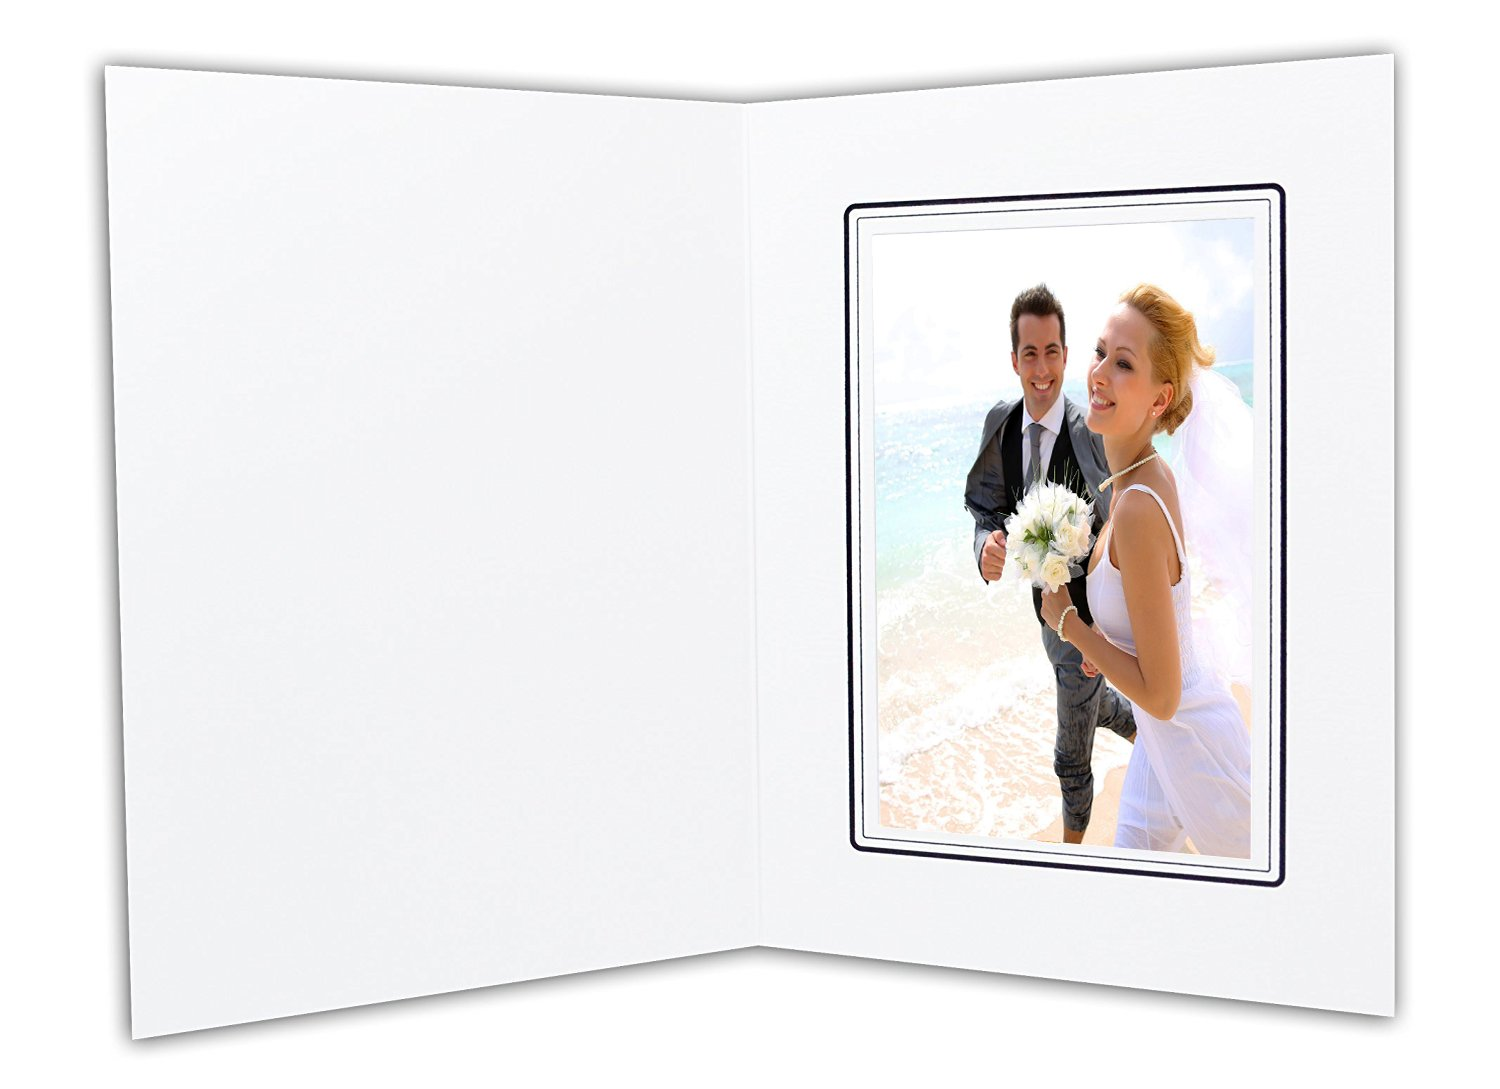 Golden State Art, Cardboard Photo Folder for a 4x6 Photo (Pack of 100) GS001-S White Color